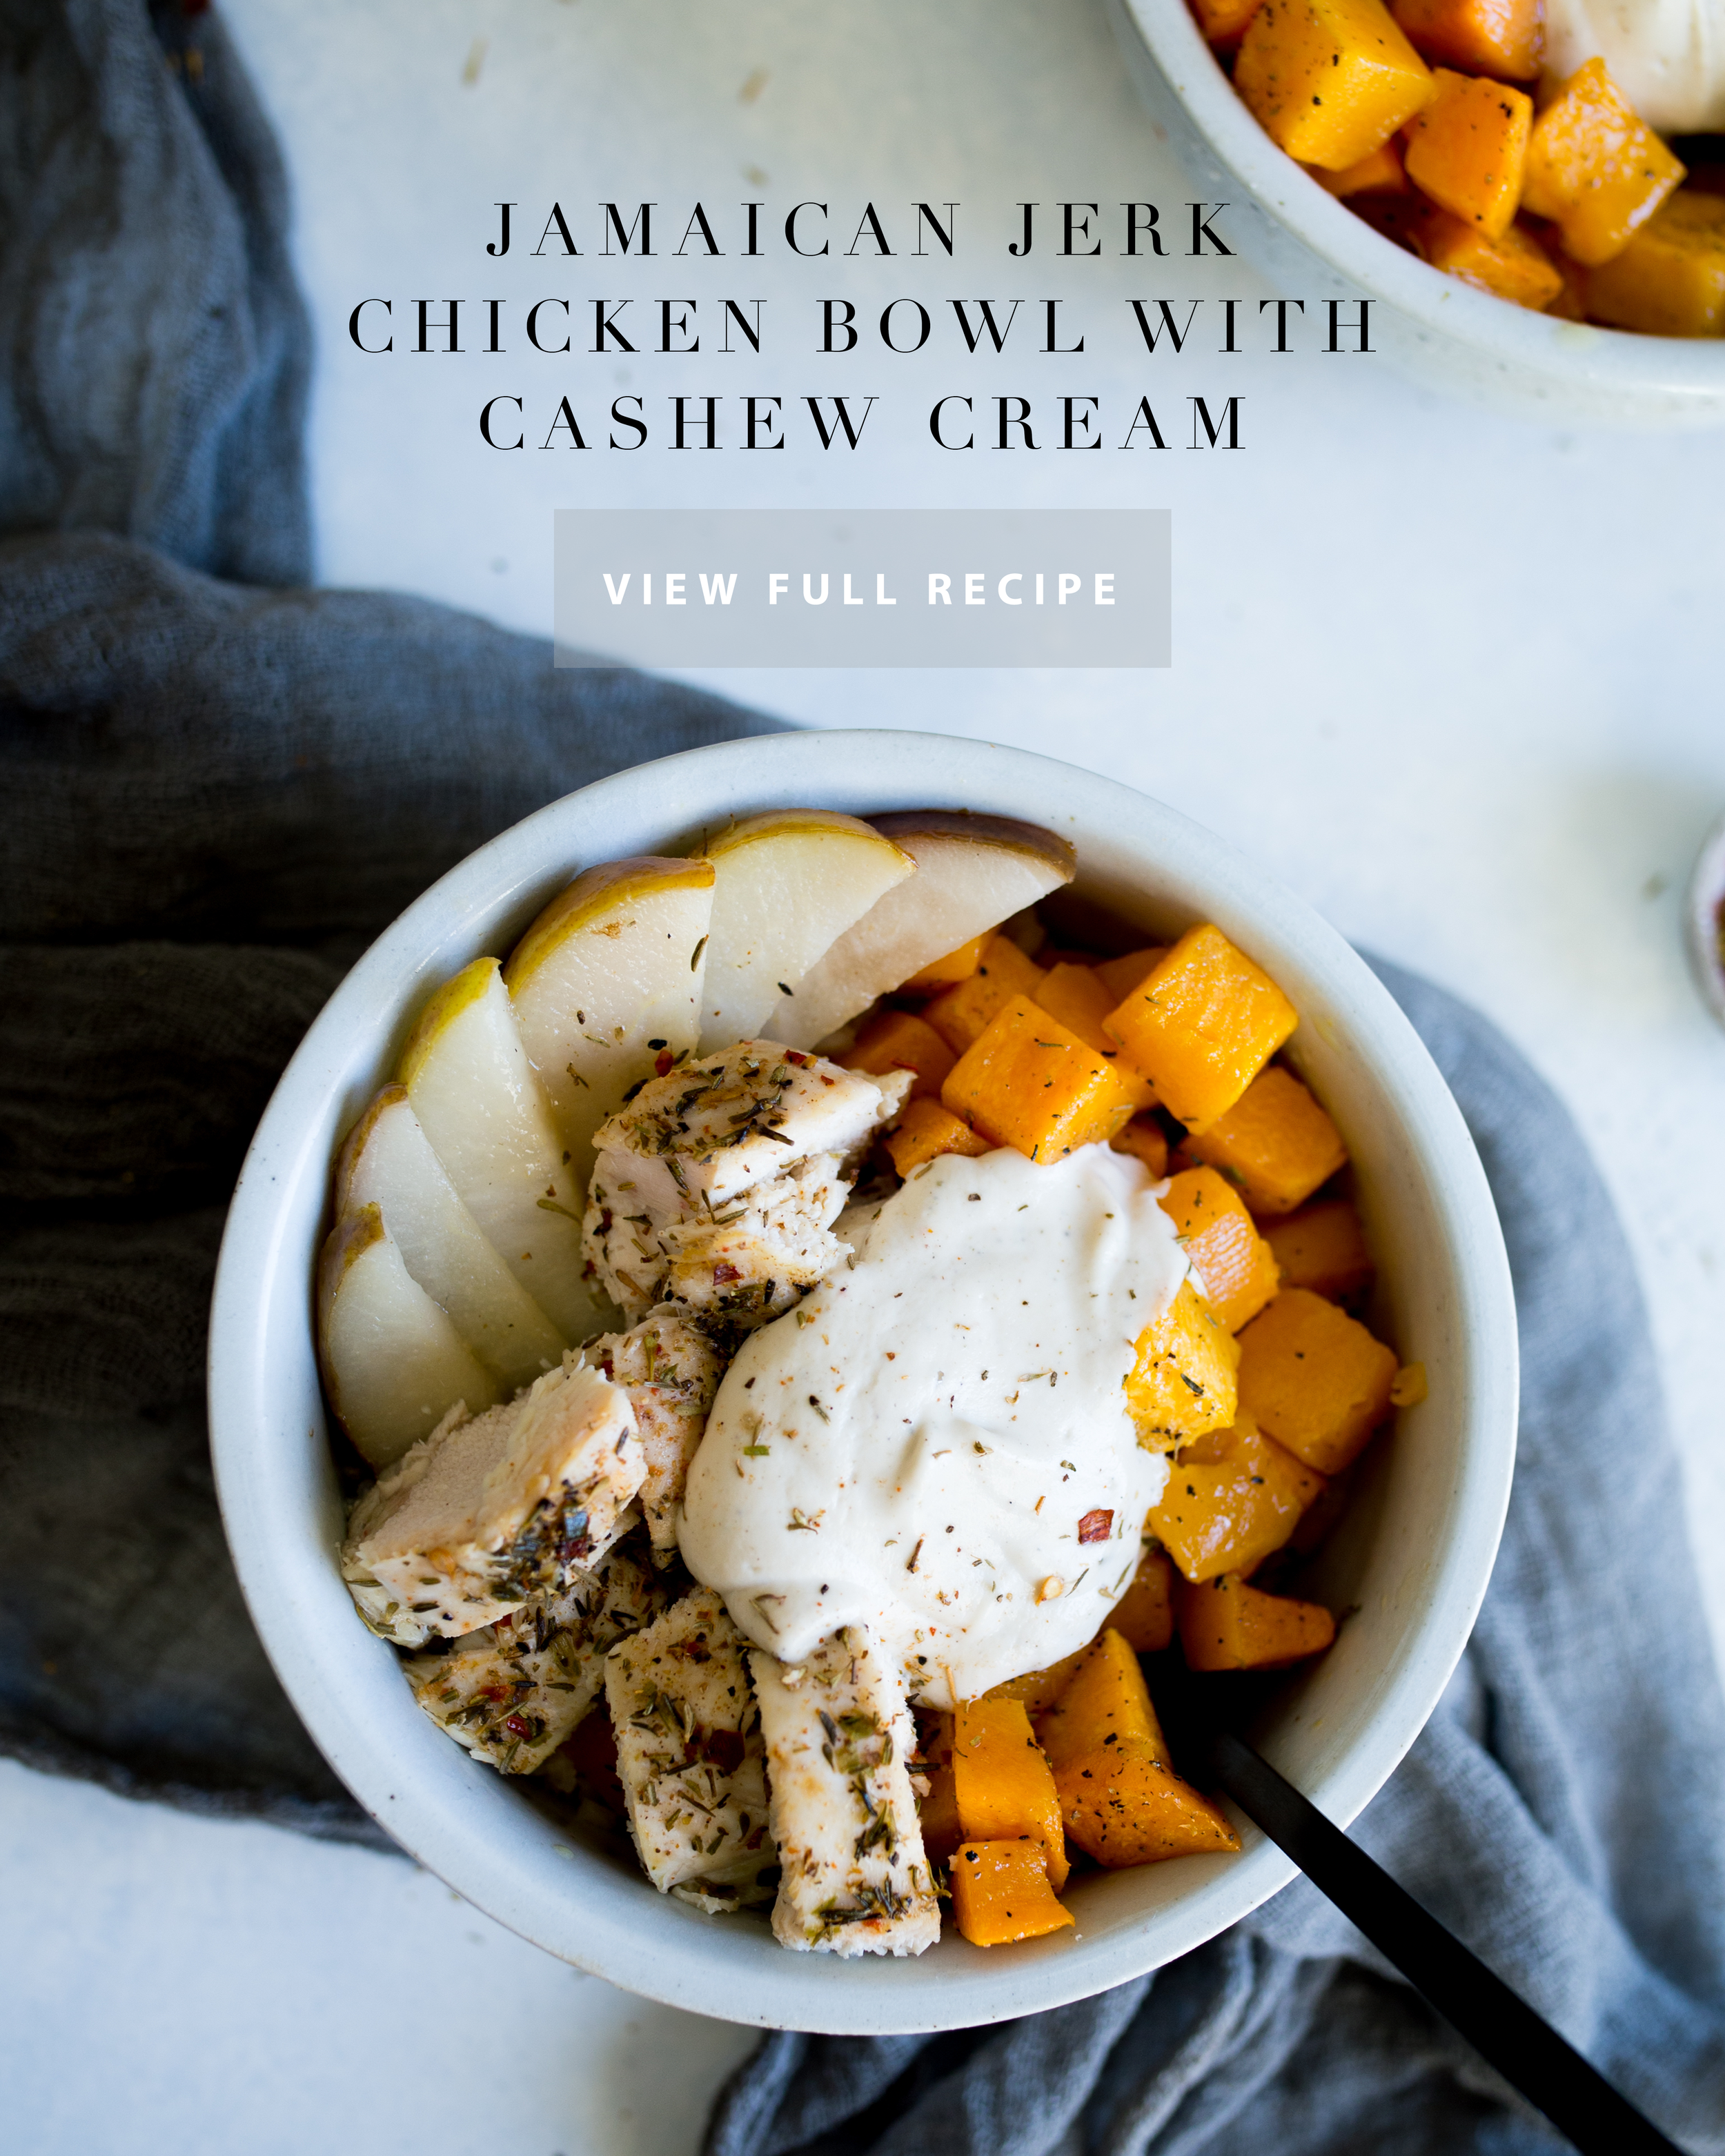 Jamaican Jerk Chicken Bowl with Cashew Cream | Jennifer Diaz | How to make a bowl meal | Healthy Dinner | Butternut Squash bowl | Easy dinner options